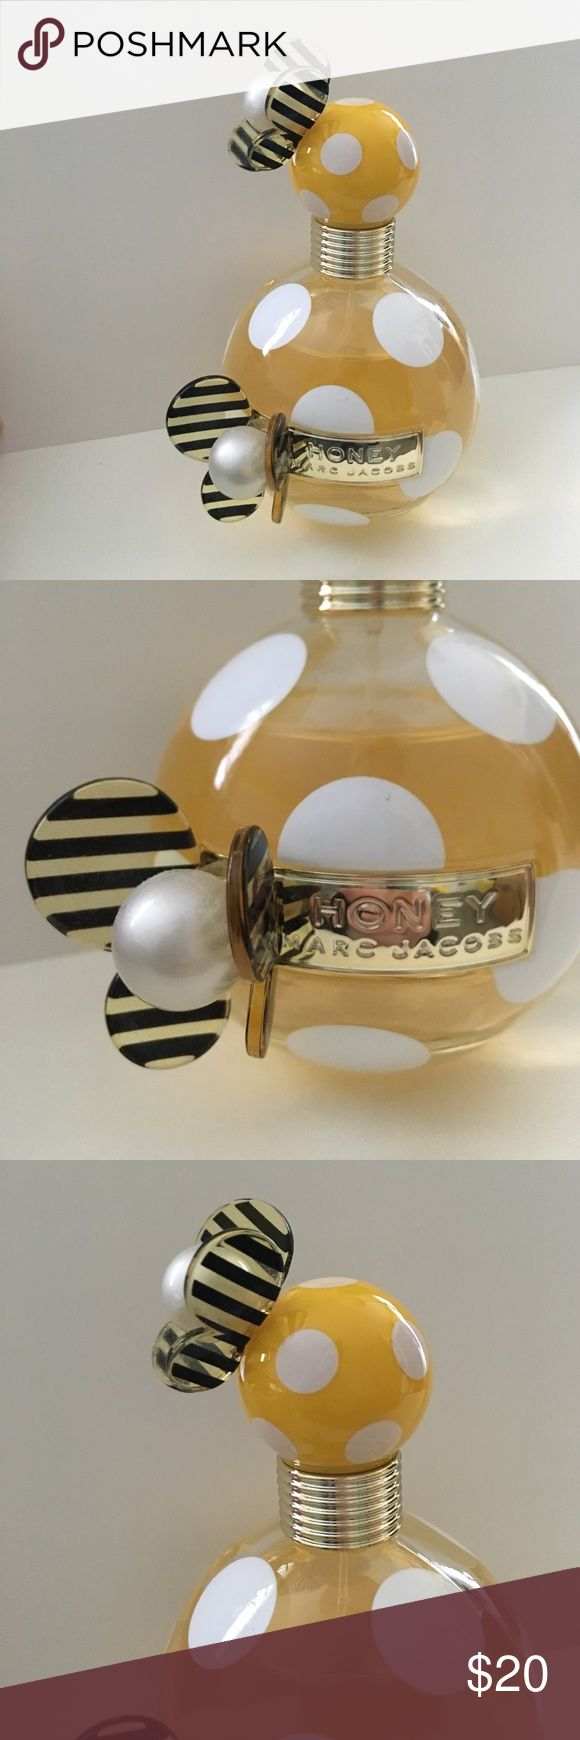 Marc Jacobs Honey Perfume This is the 3.4 OZ, 100 ML size bottle. This has been used a few times, but the bottle is more than 3/4 full. Simply selling it because I don't use it anymore and don't want it to go to waste. It's a sunny floral scent and comes in a beautiful bottle. Original box NOT included. Marc Jacobs Makeup